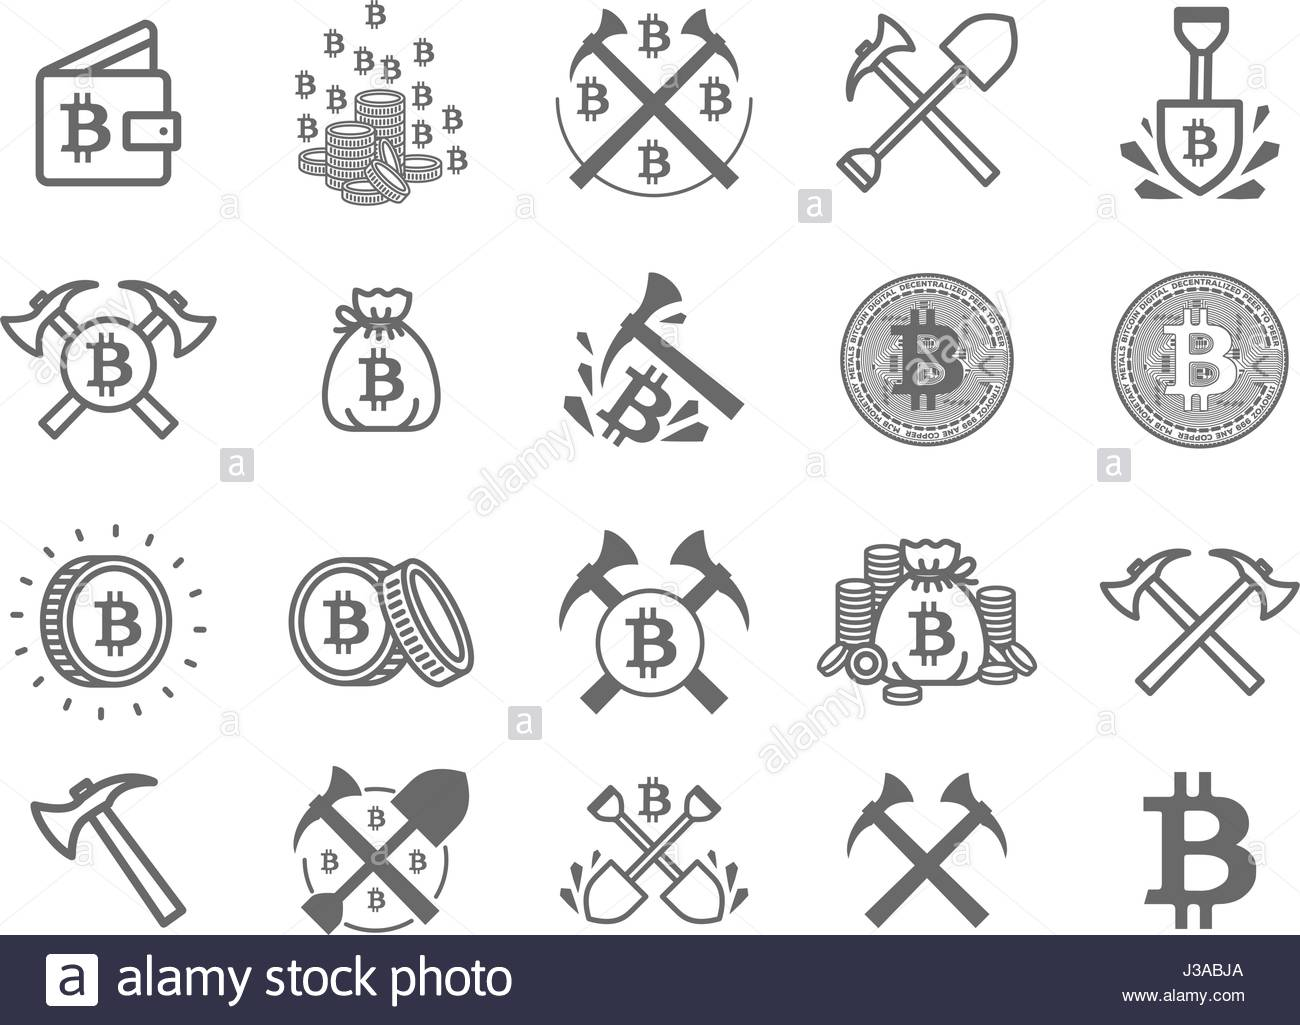 Miner Bitcoin Crypto Currency Symbol Icon Set Stock Vector Art